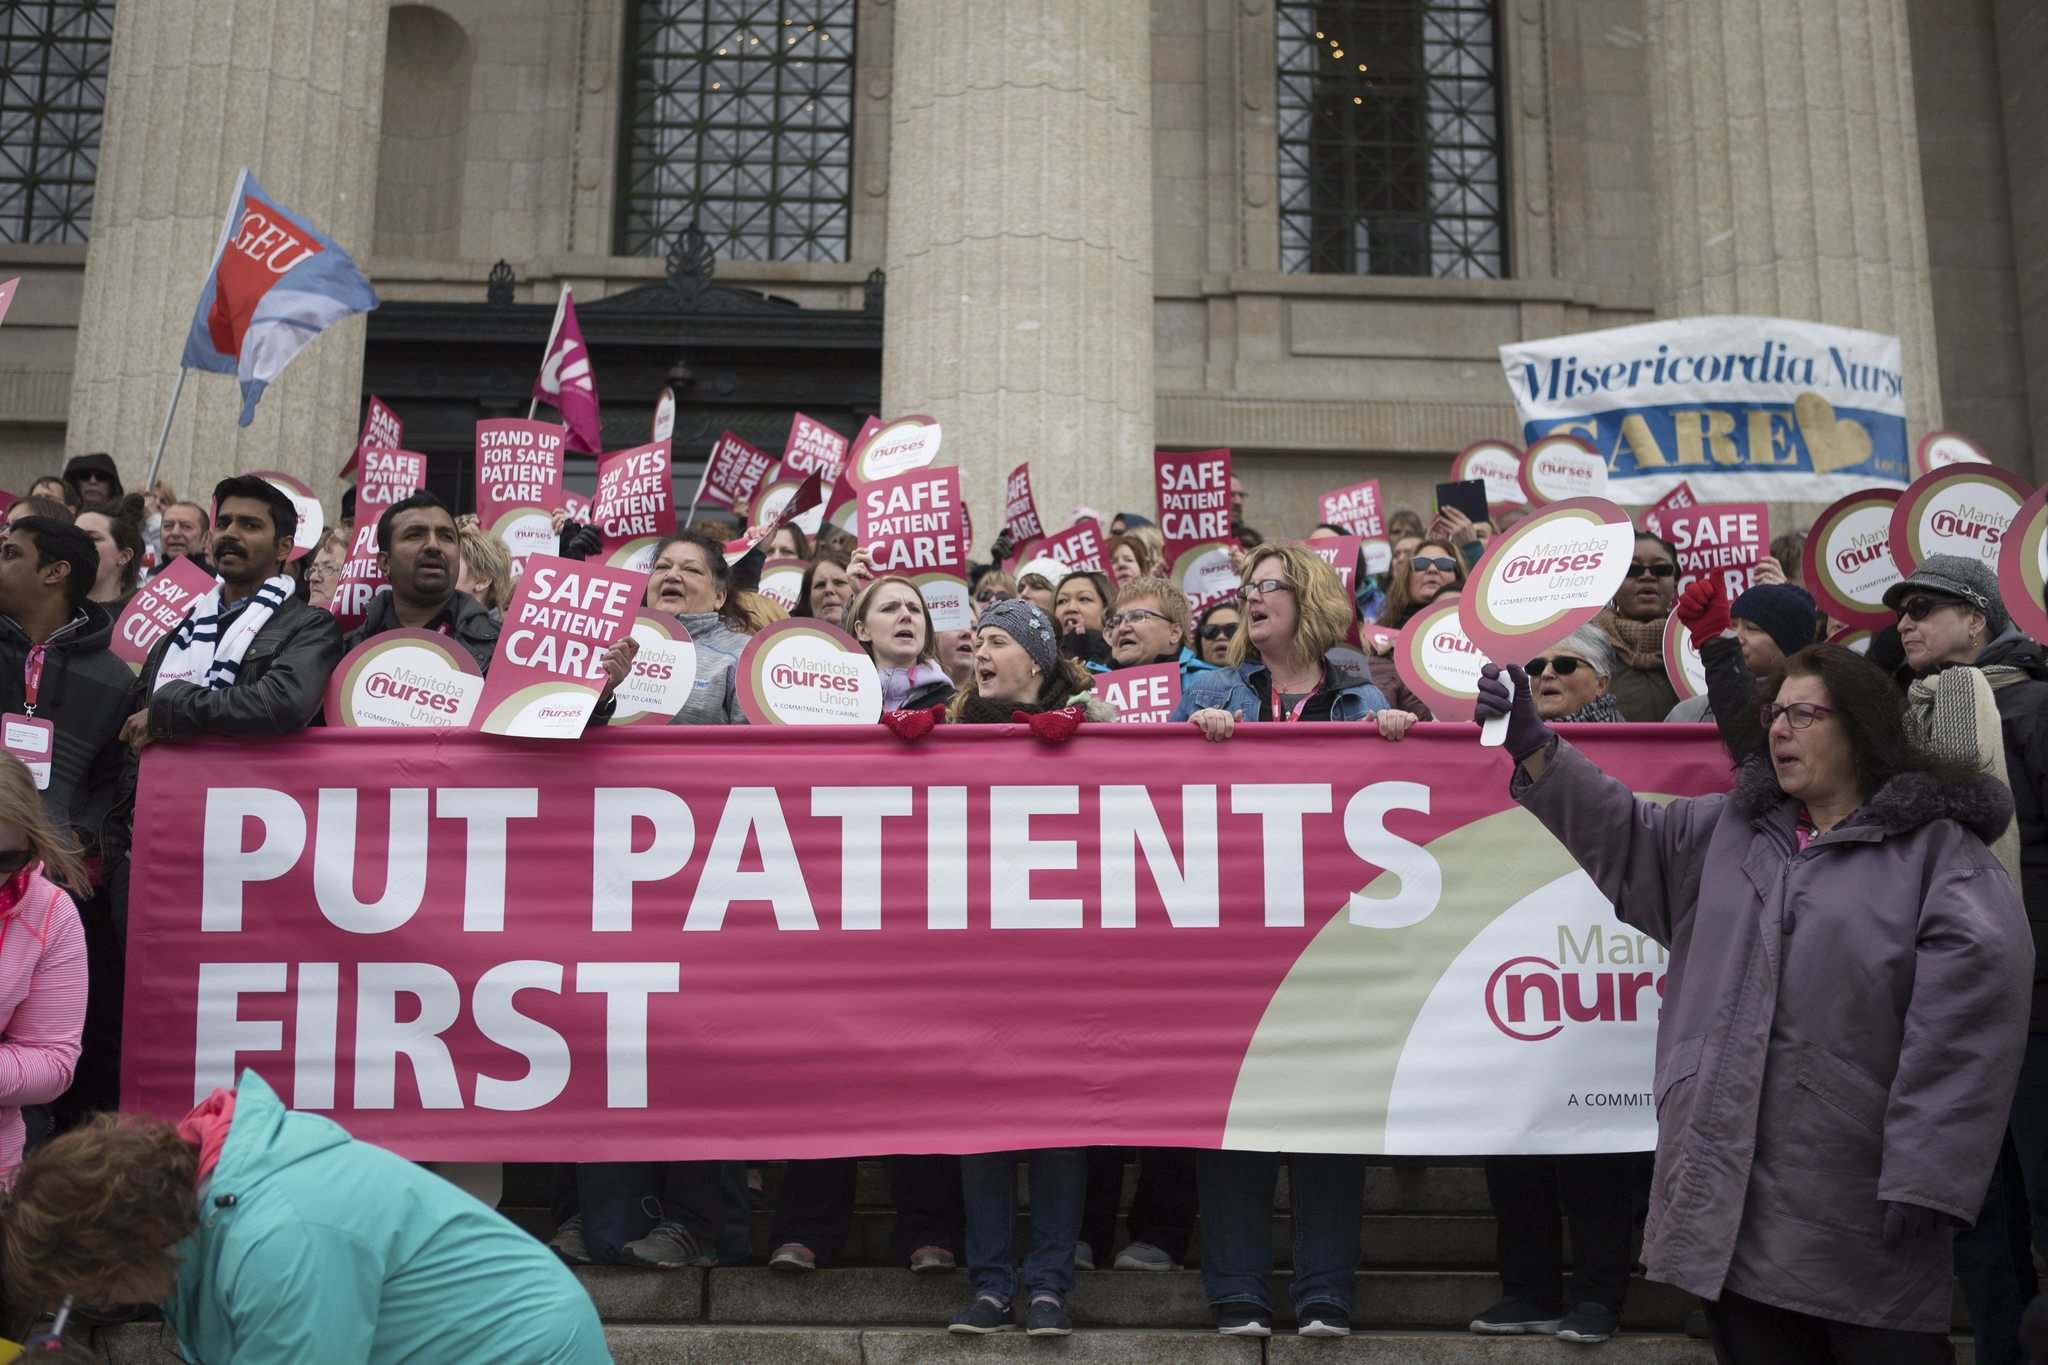 Hundreds of members of the Manitoba Nurses Union and other labour supporters rallied at the Manitoba Legislative Building on Wednesday. (Jen Doerksen / Winnipeg Free Press)</p>